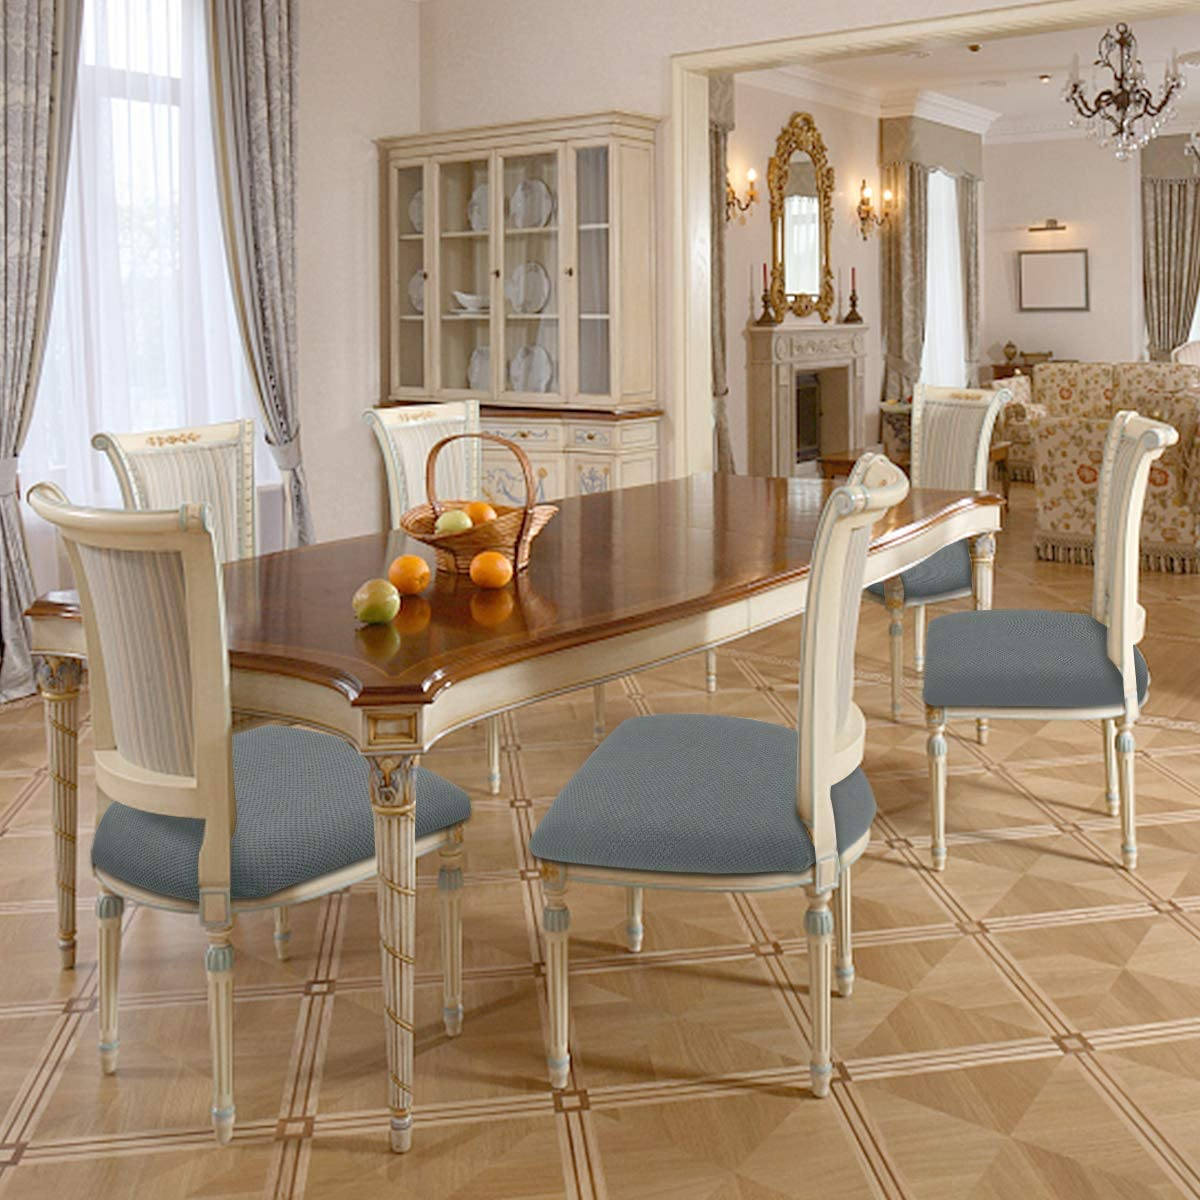 Buy Seat Covers for Dining Room Chairs, Waterproof Kitchen Dining ...